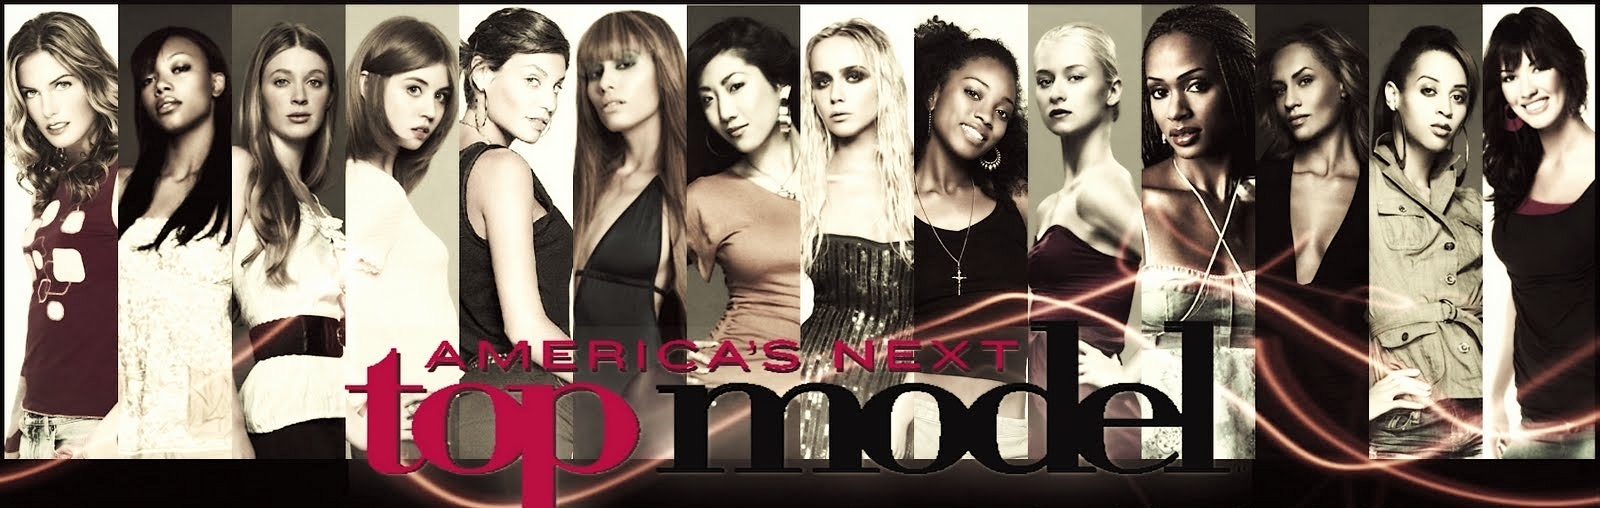 America's Next Top Model CYCLE BANNER